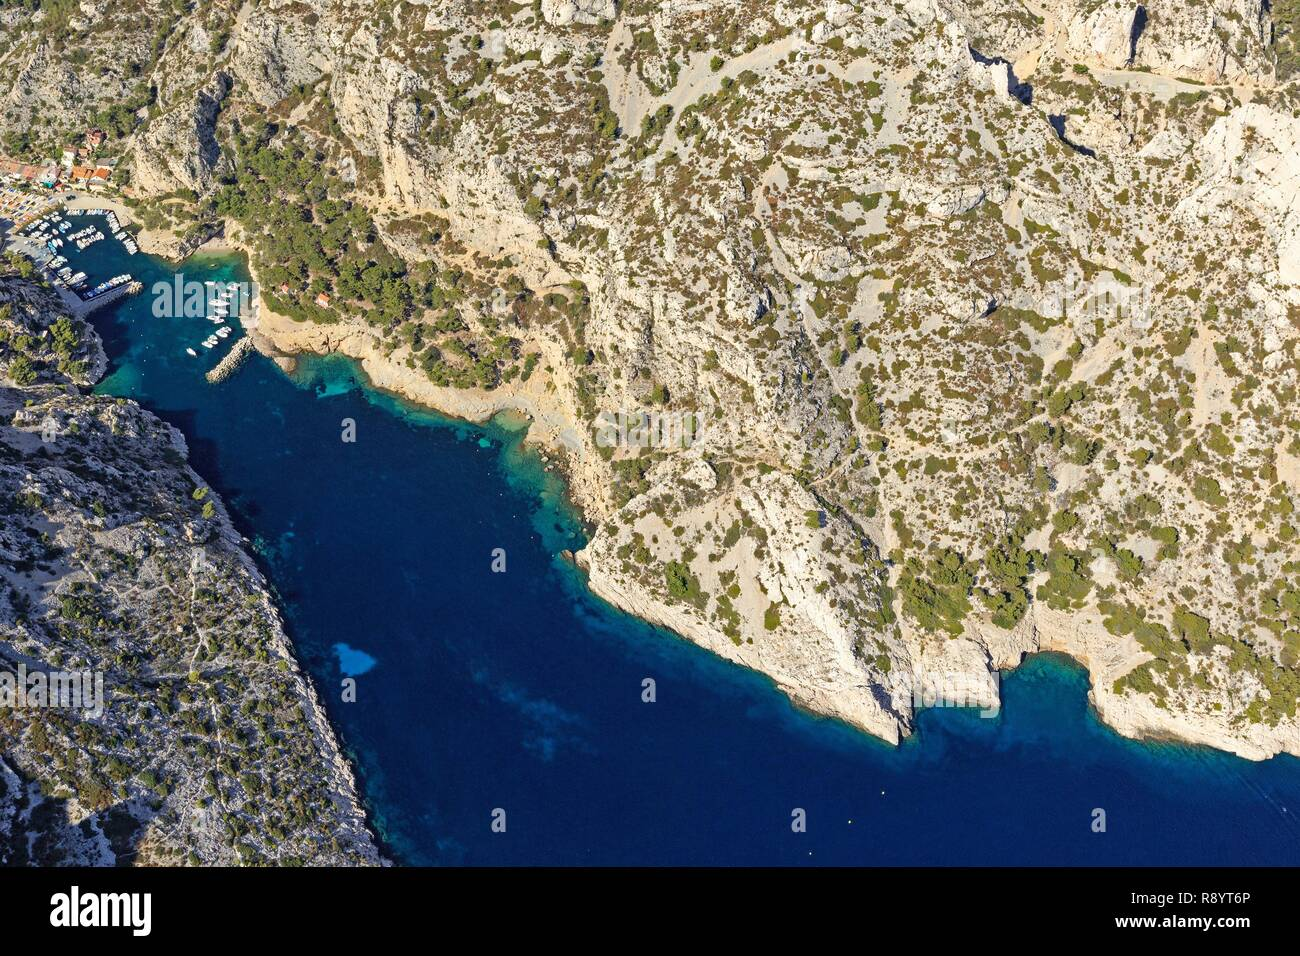 France, Bouches du Rhone, Calanques National Park, Marseille, 9th arrondissement, cove of Morgiou (aerial view) - Stock Image